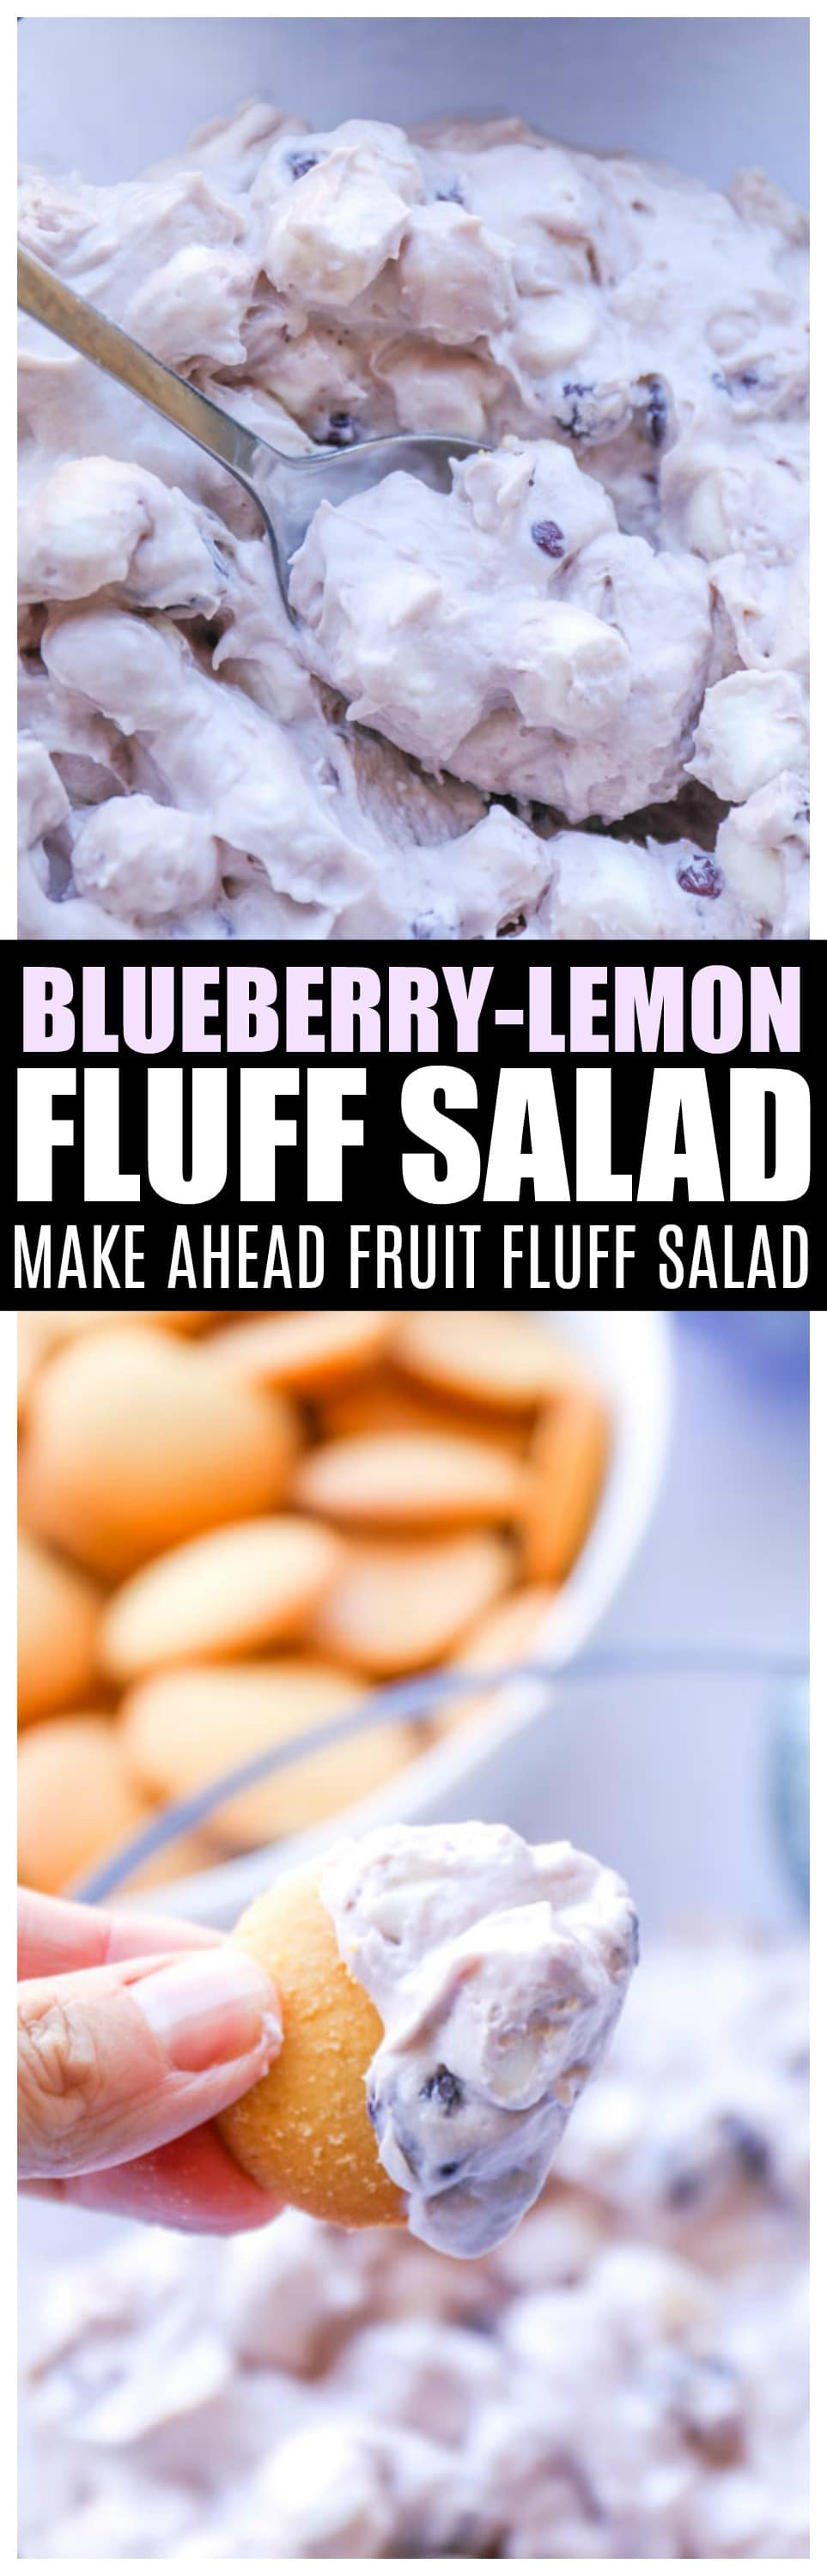 Blueberry Lemon Fluff Salad | Make ahead dessert side dish #fluffsalad #recipes #blueberry #sidedish #saltysidedish